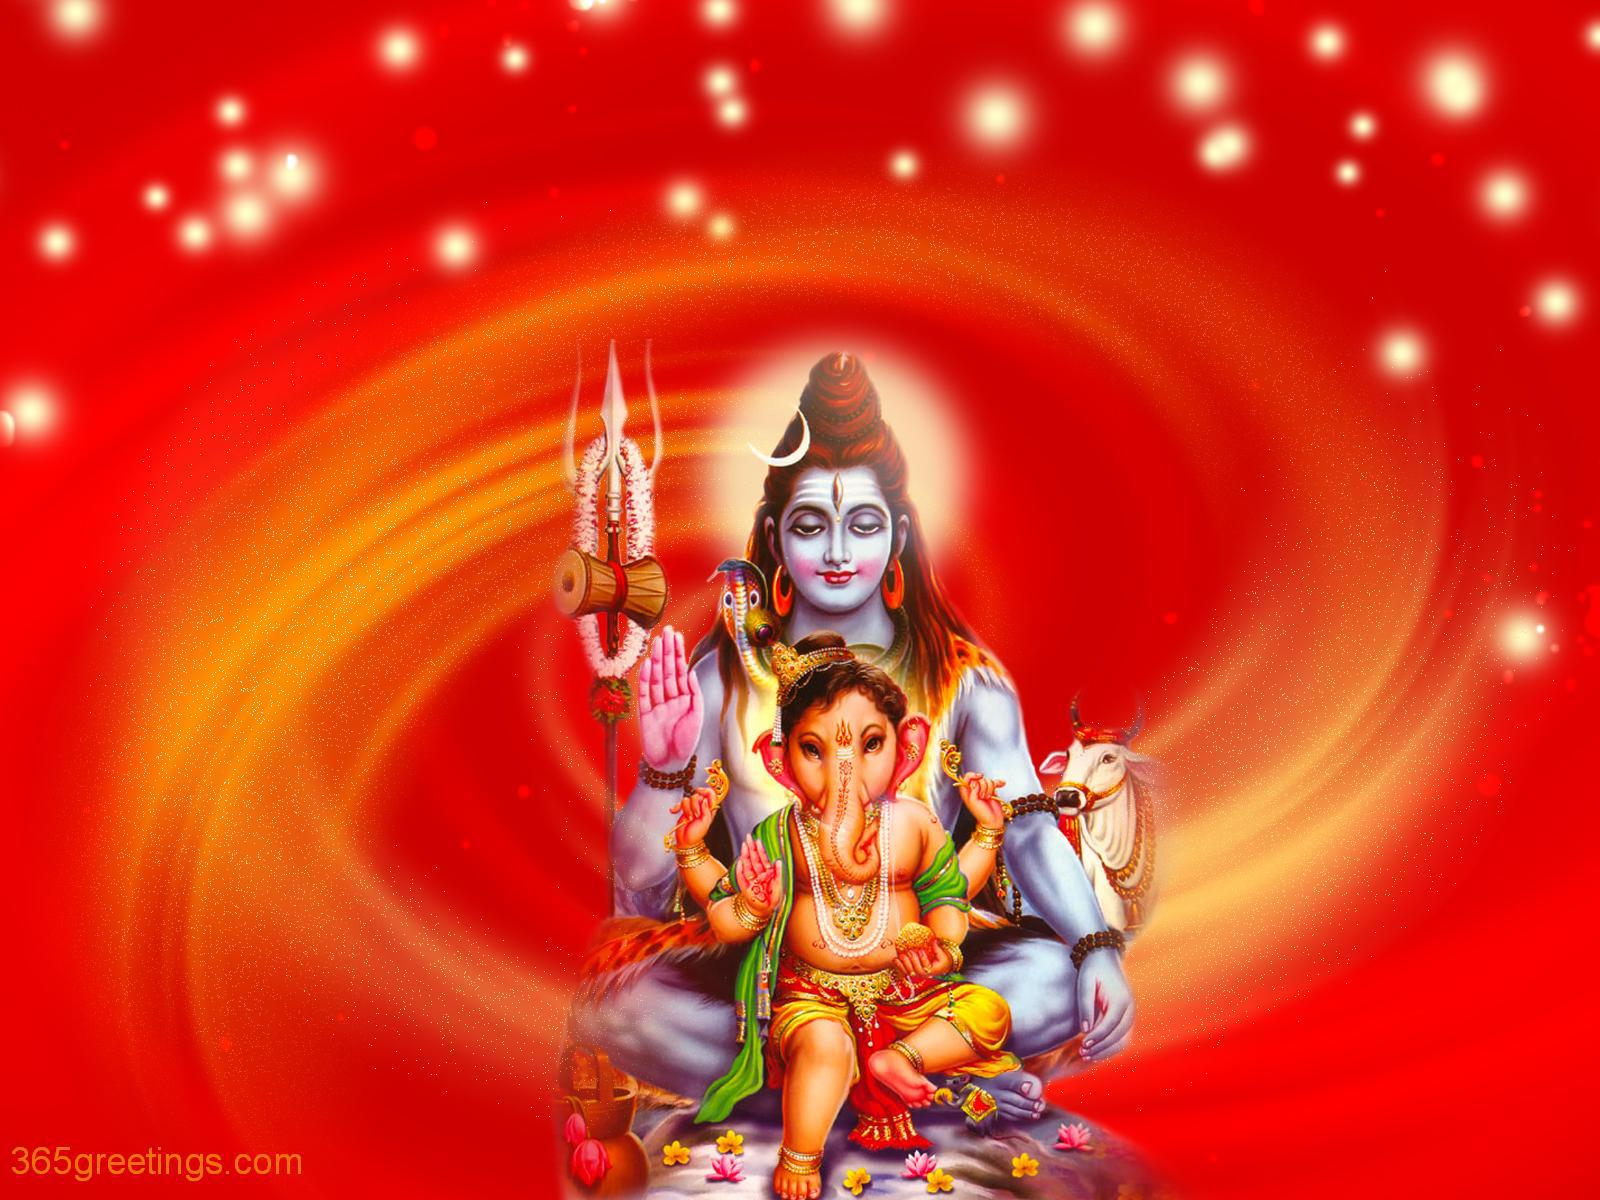 Lord Shiva Shankar Wallpaper & Image 15